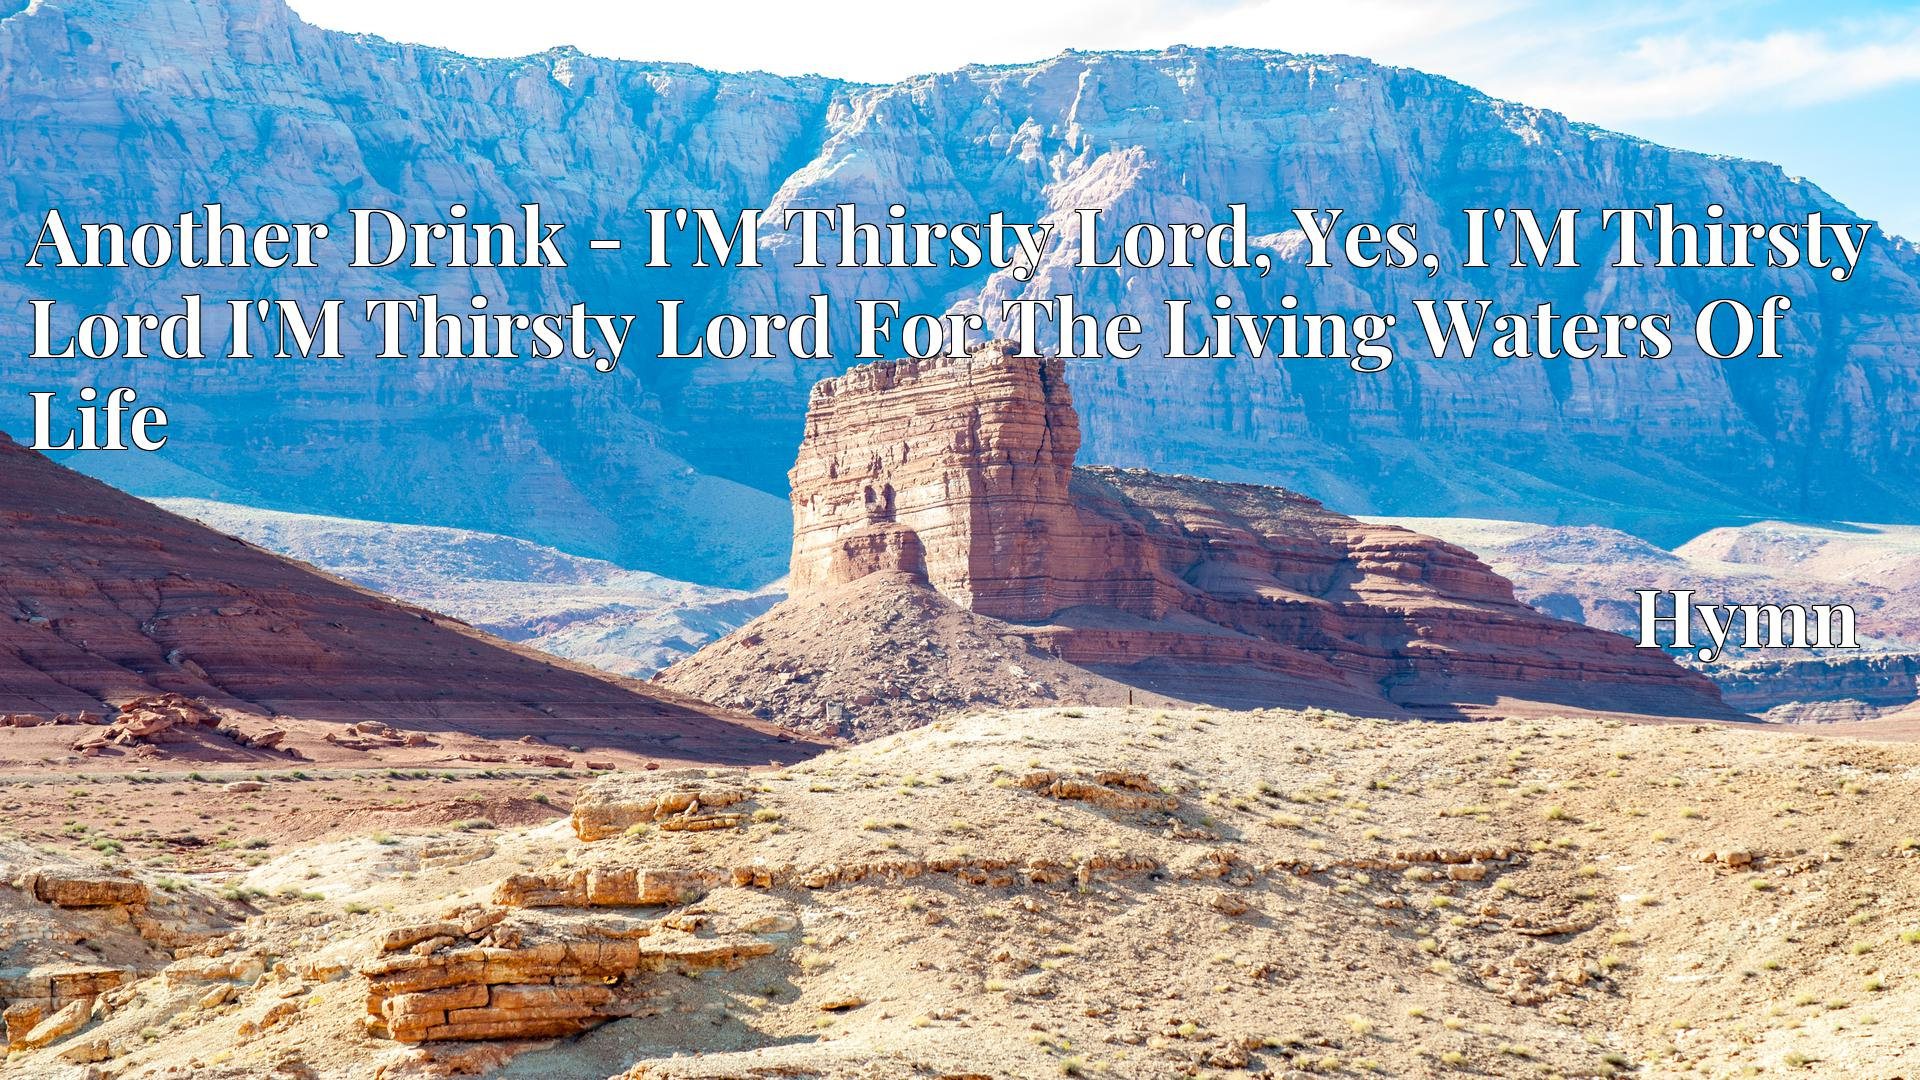 Another Drink - I'M Thirsty Lord, Yes, I'M Thirsty Lord I'M Thirsty Lord For The Living Waters Of Life - Hymn